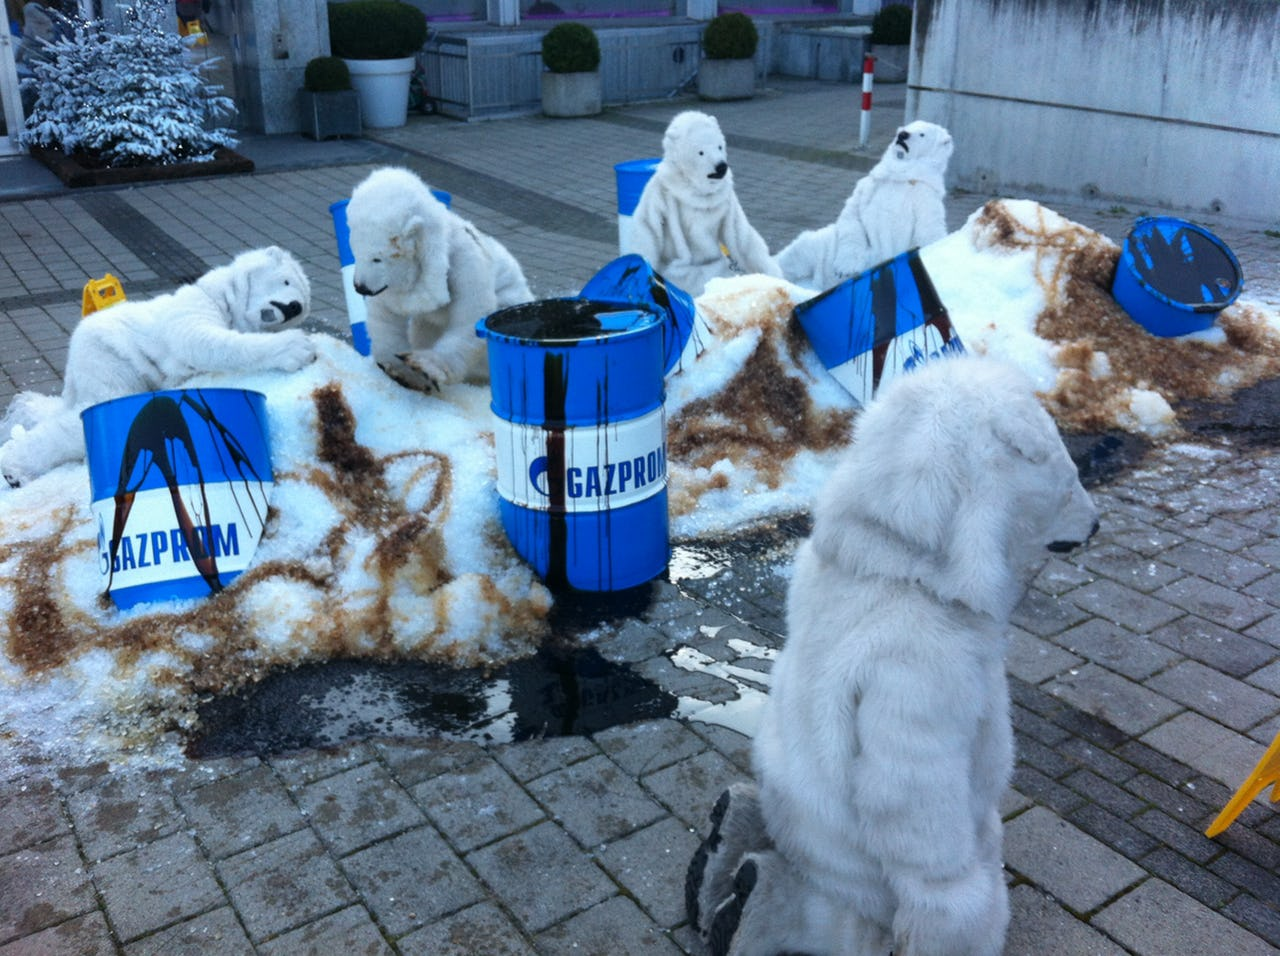 People dressed-up as polar bears protesting